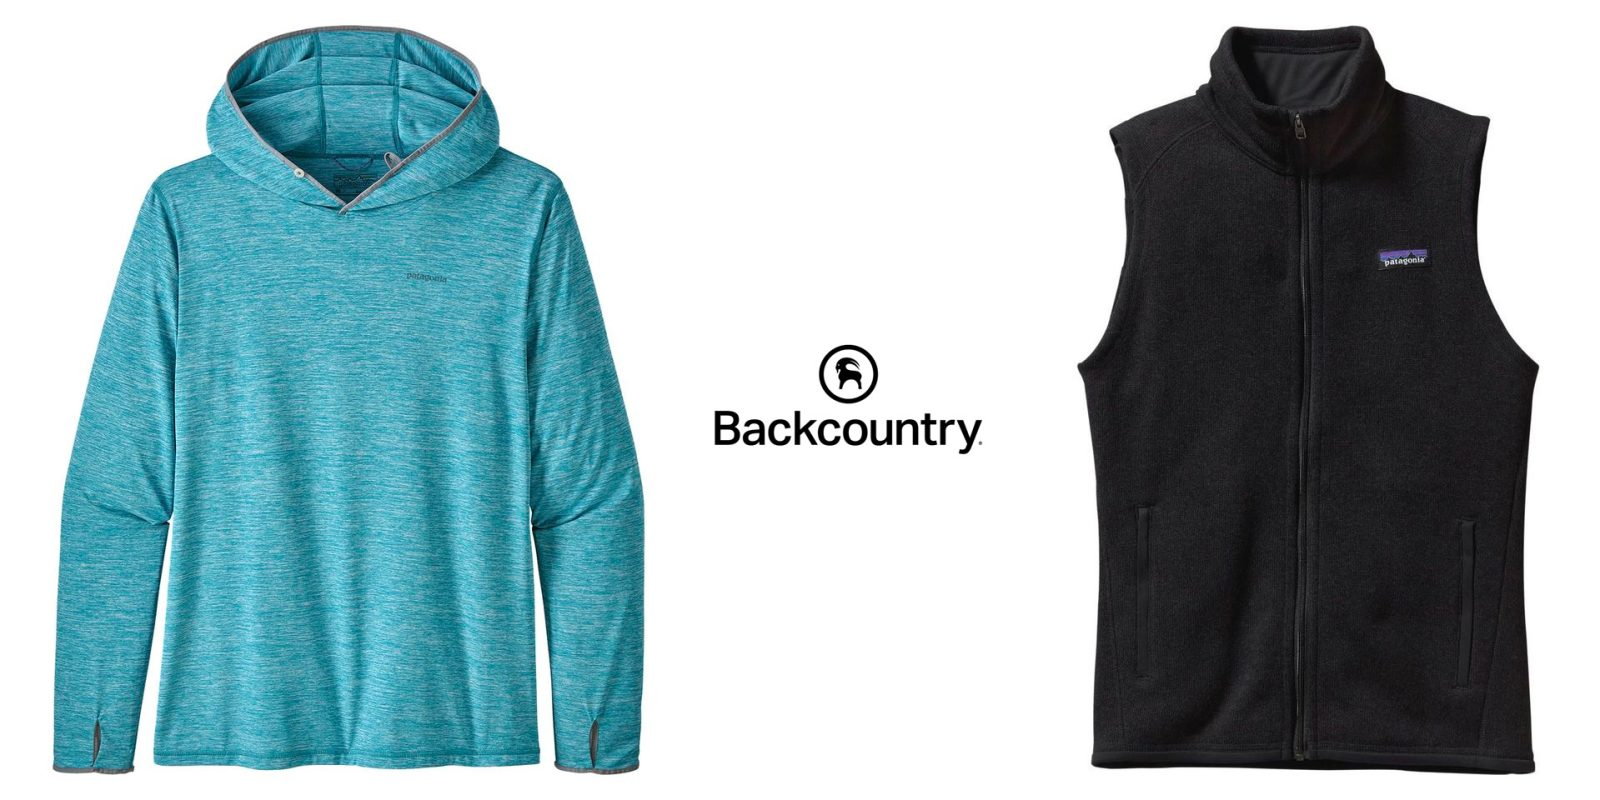 e02fee7ed Backcountry's Big Brands Sale offers up to 75% off Patagonia, Mammut ...